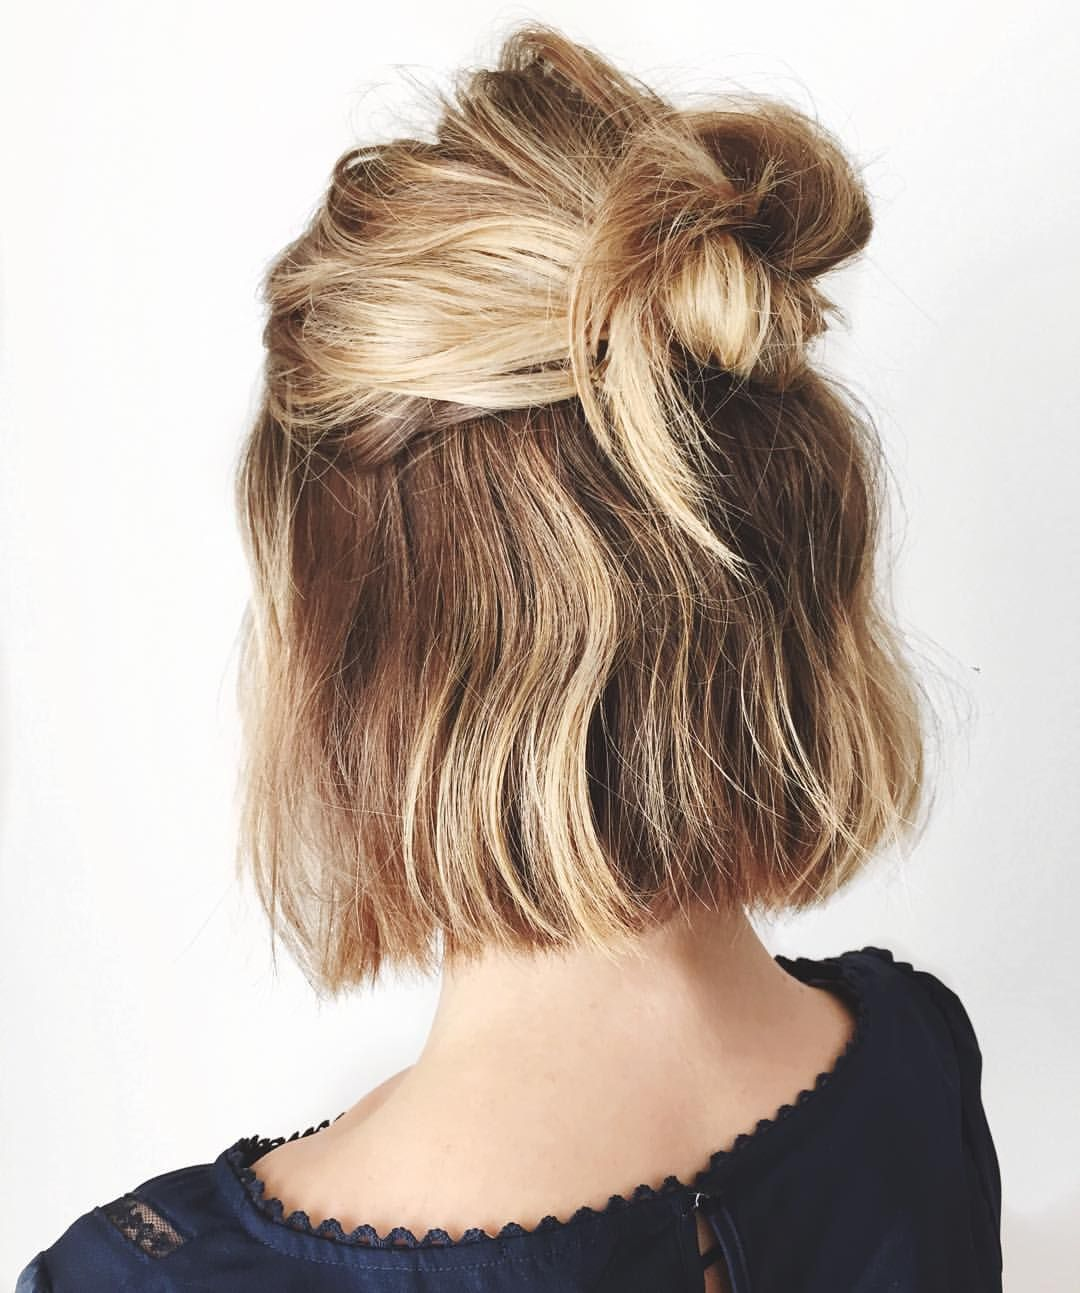 Pin by jenn nguyen on hair in pinterest hair short hair